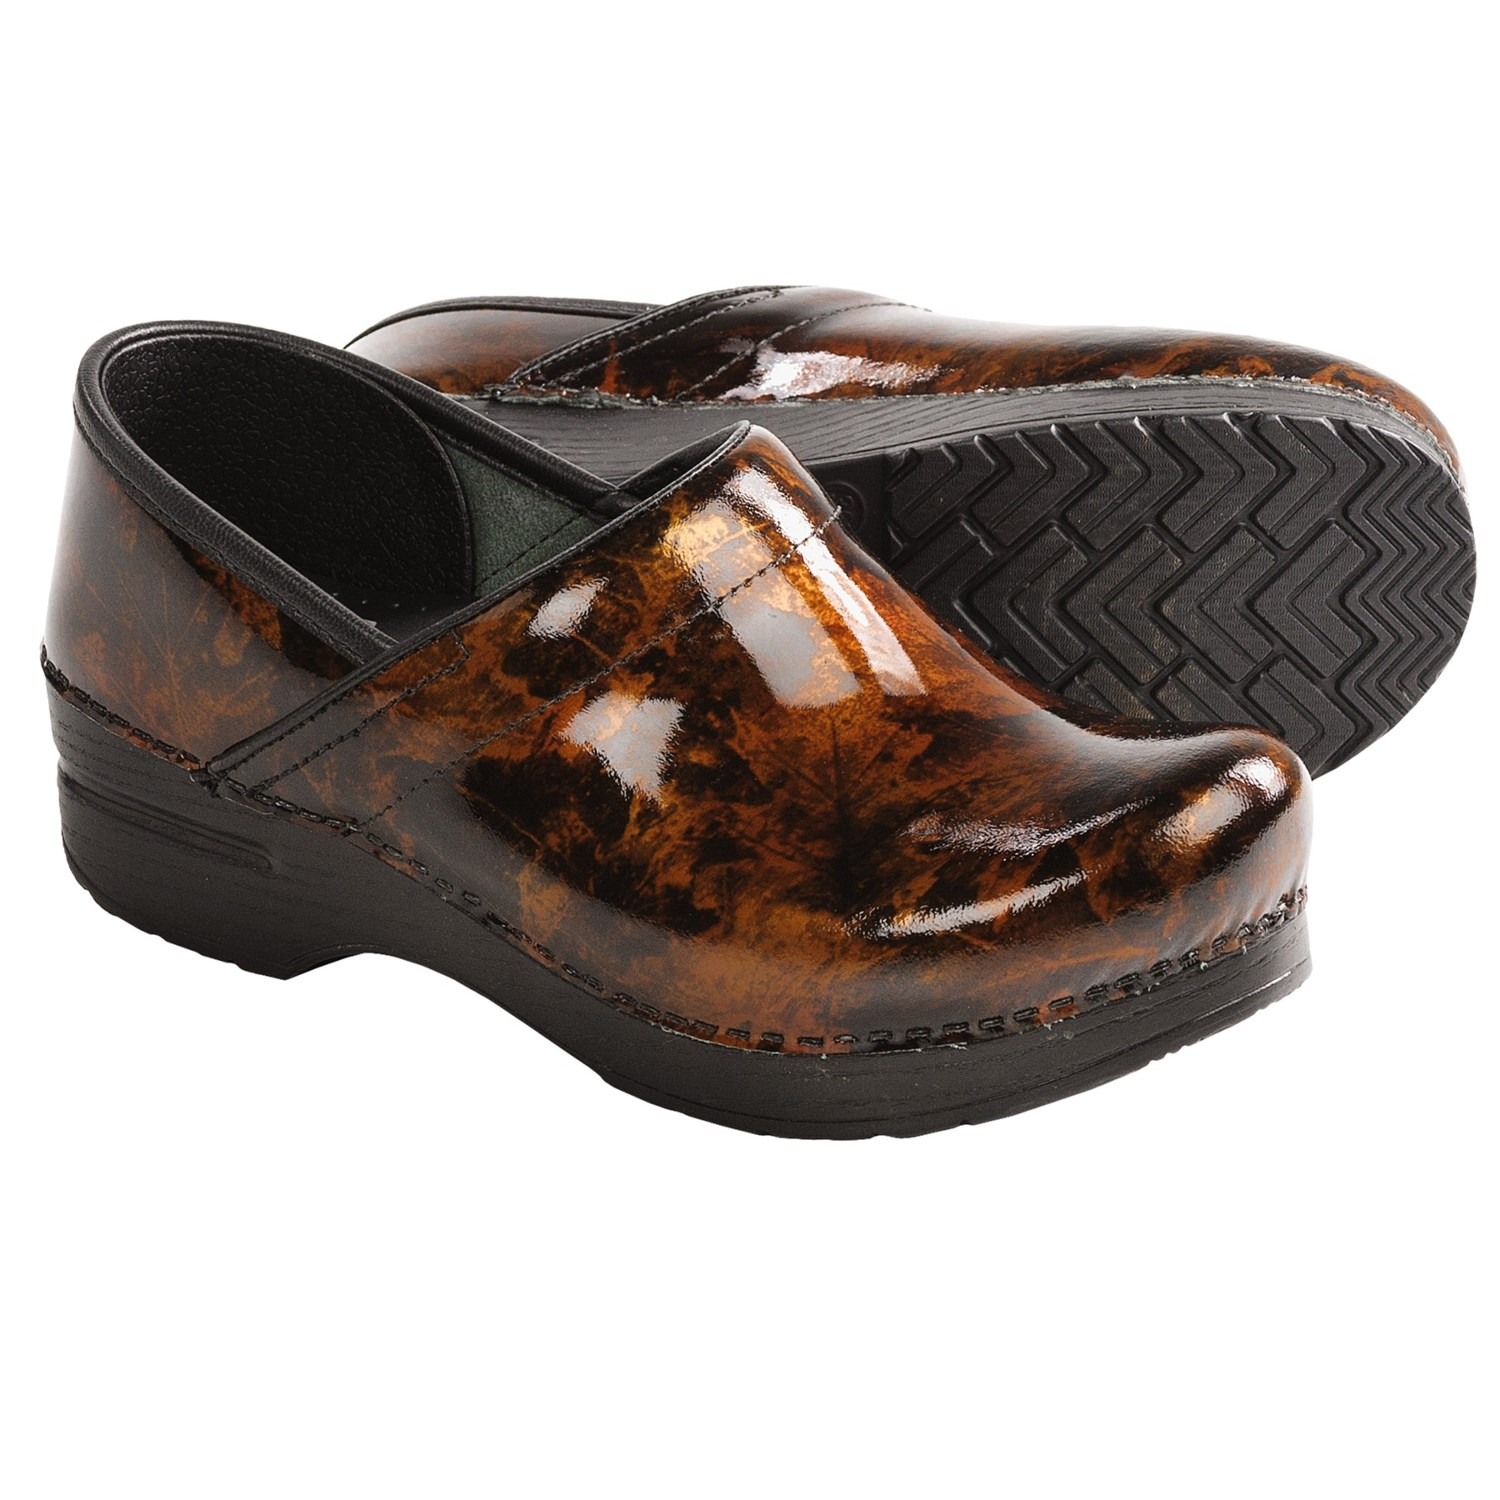 Dansko Medical Shoes